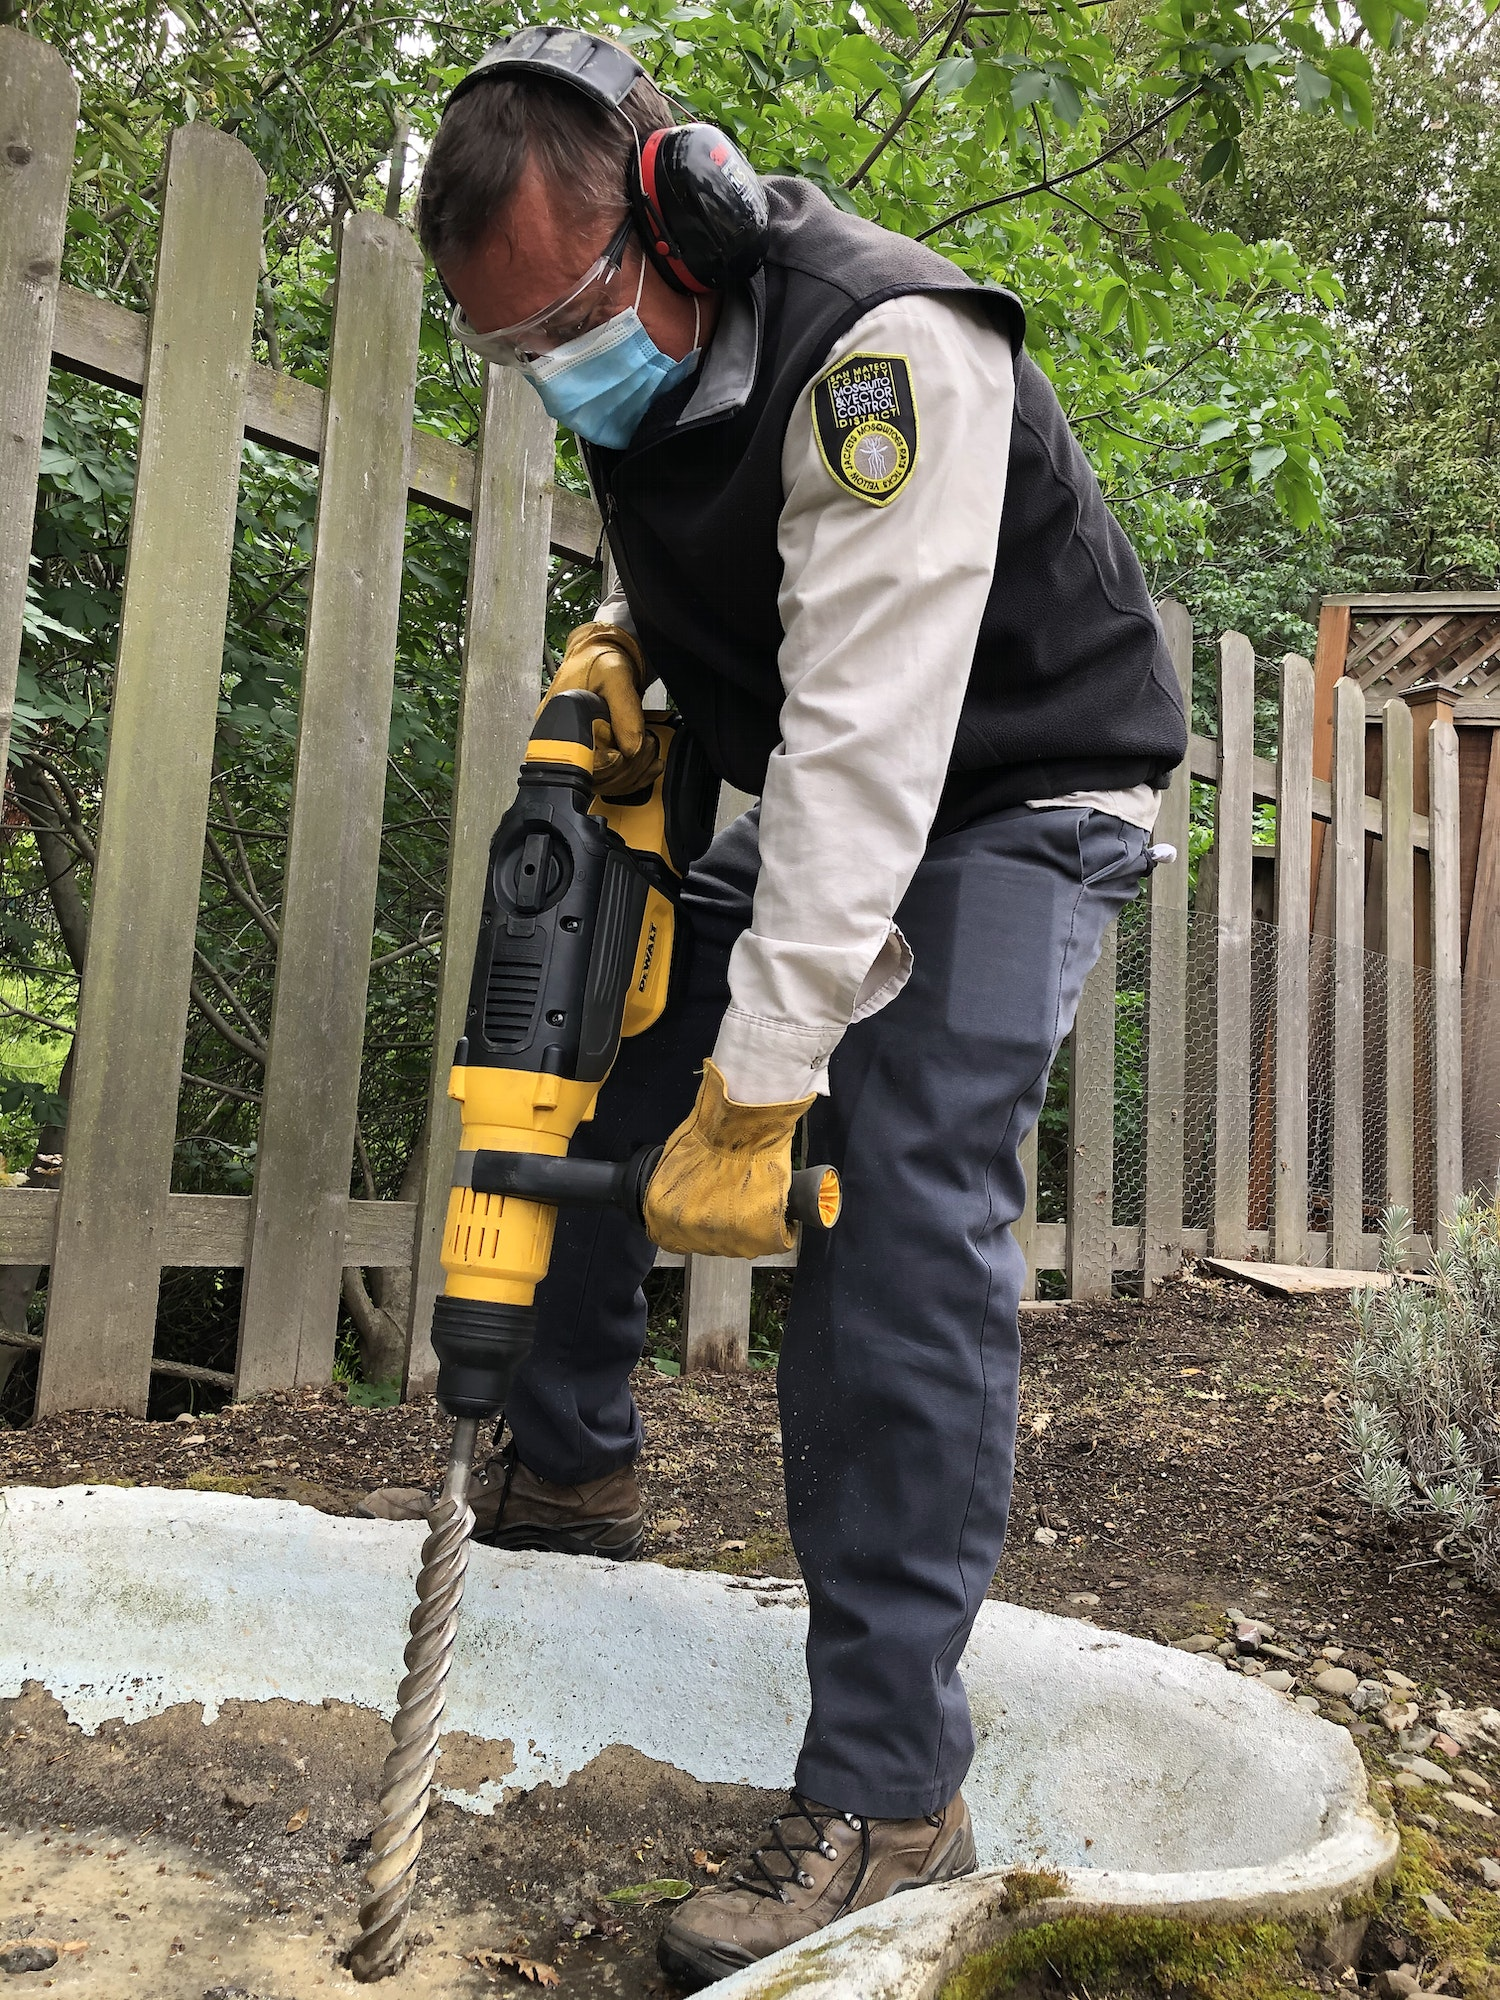 Person in tan, grey, and black uniform, with hearing protection, face mask, and work gloves.  Person is using a large drill with a thick, long bit to drill into a muddy concrete pond to create holes.